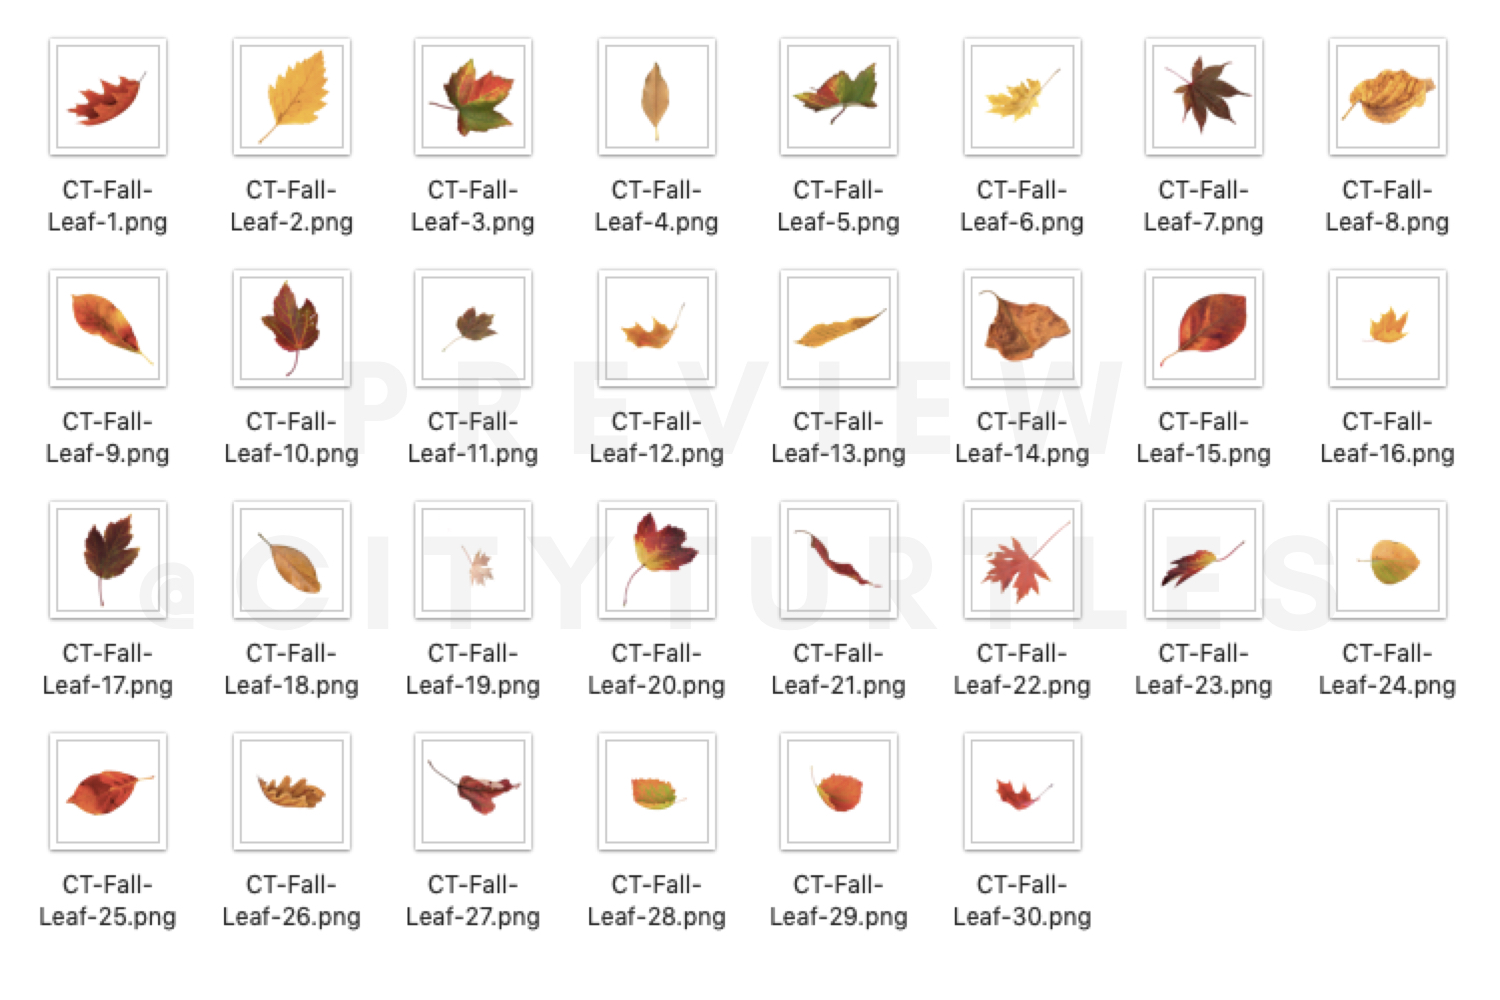 70 Natural Falling Autumn Leaves Photoshop Overlays - autumn falling leaves photoshop photography overlays 9 -